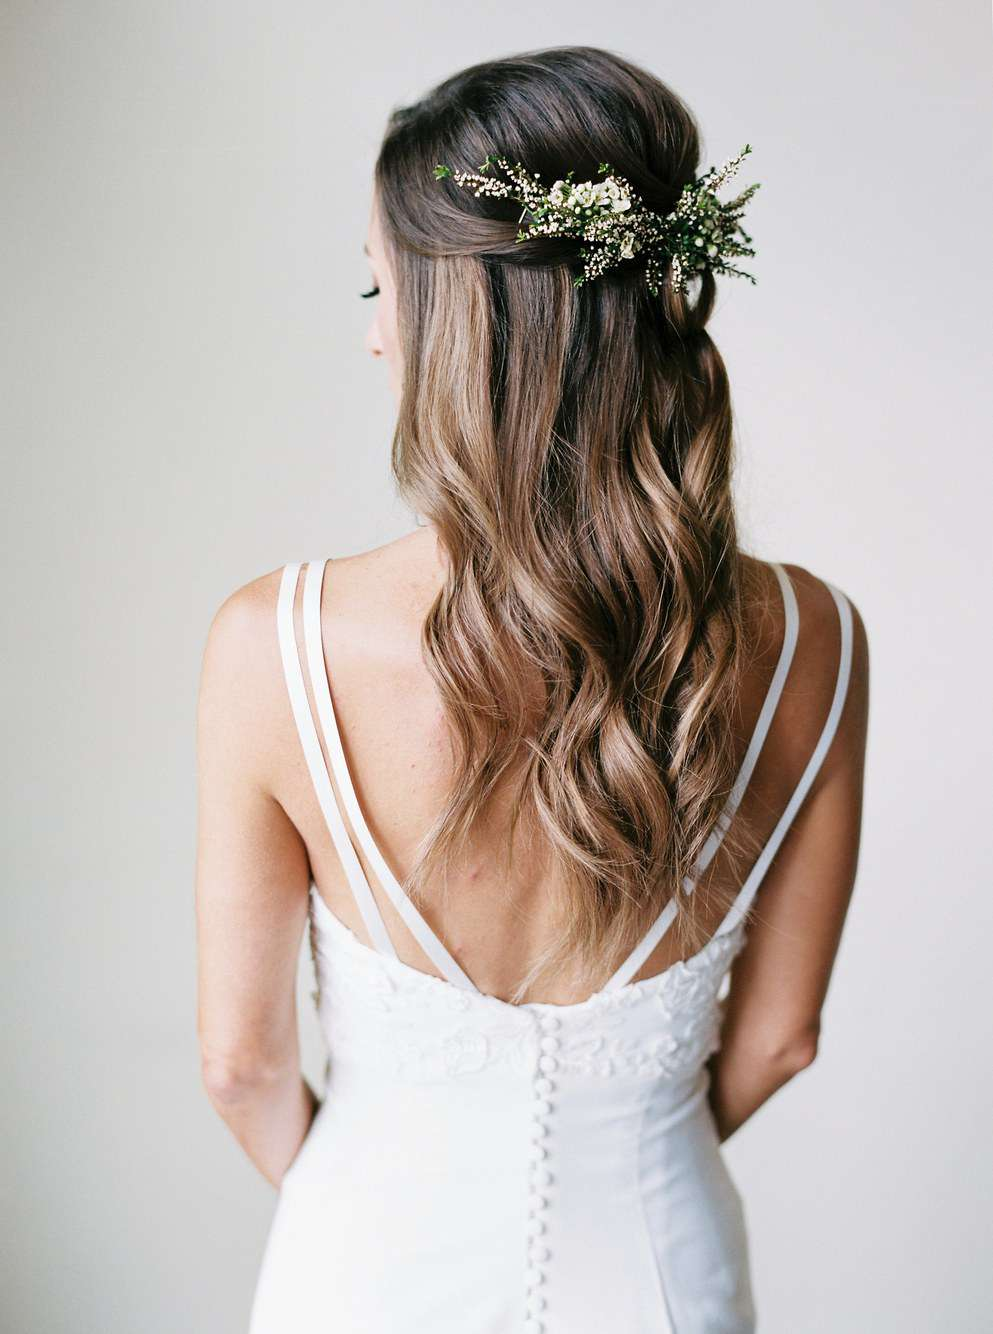 12 ways to wear flowers in your bridal hairstyle ~ KISS THE BRIDE